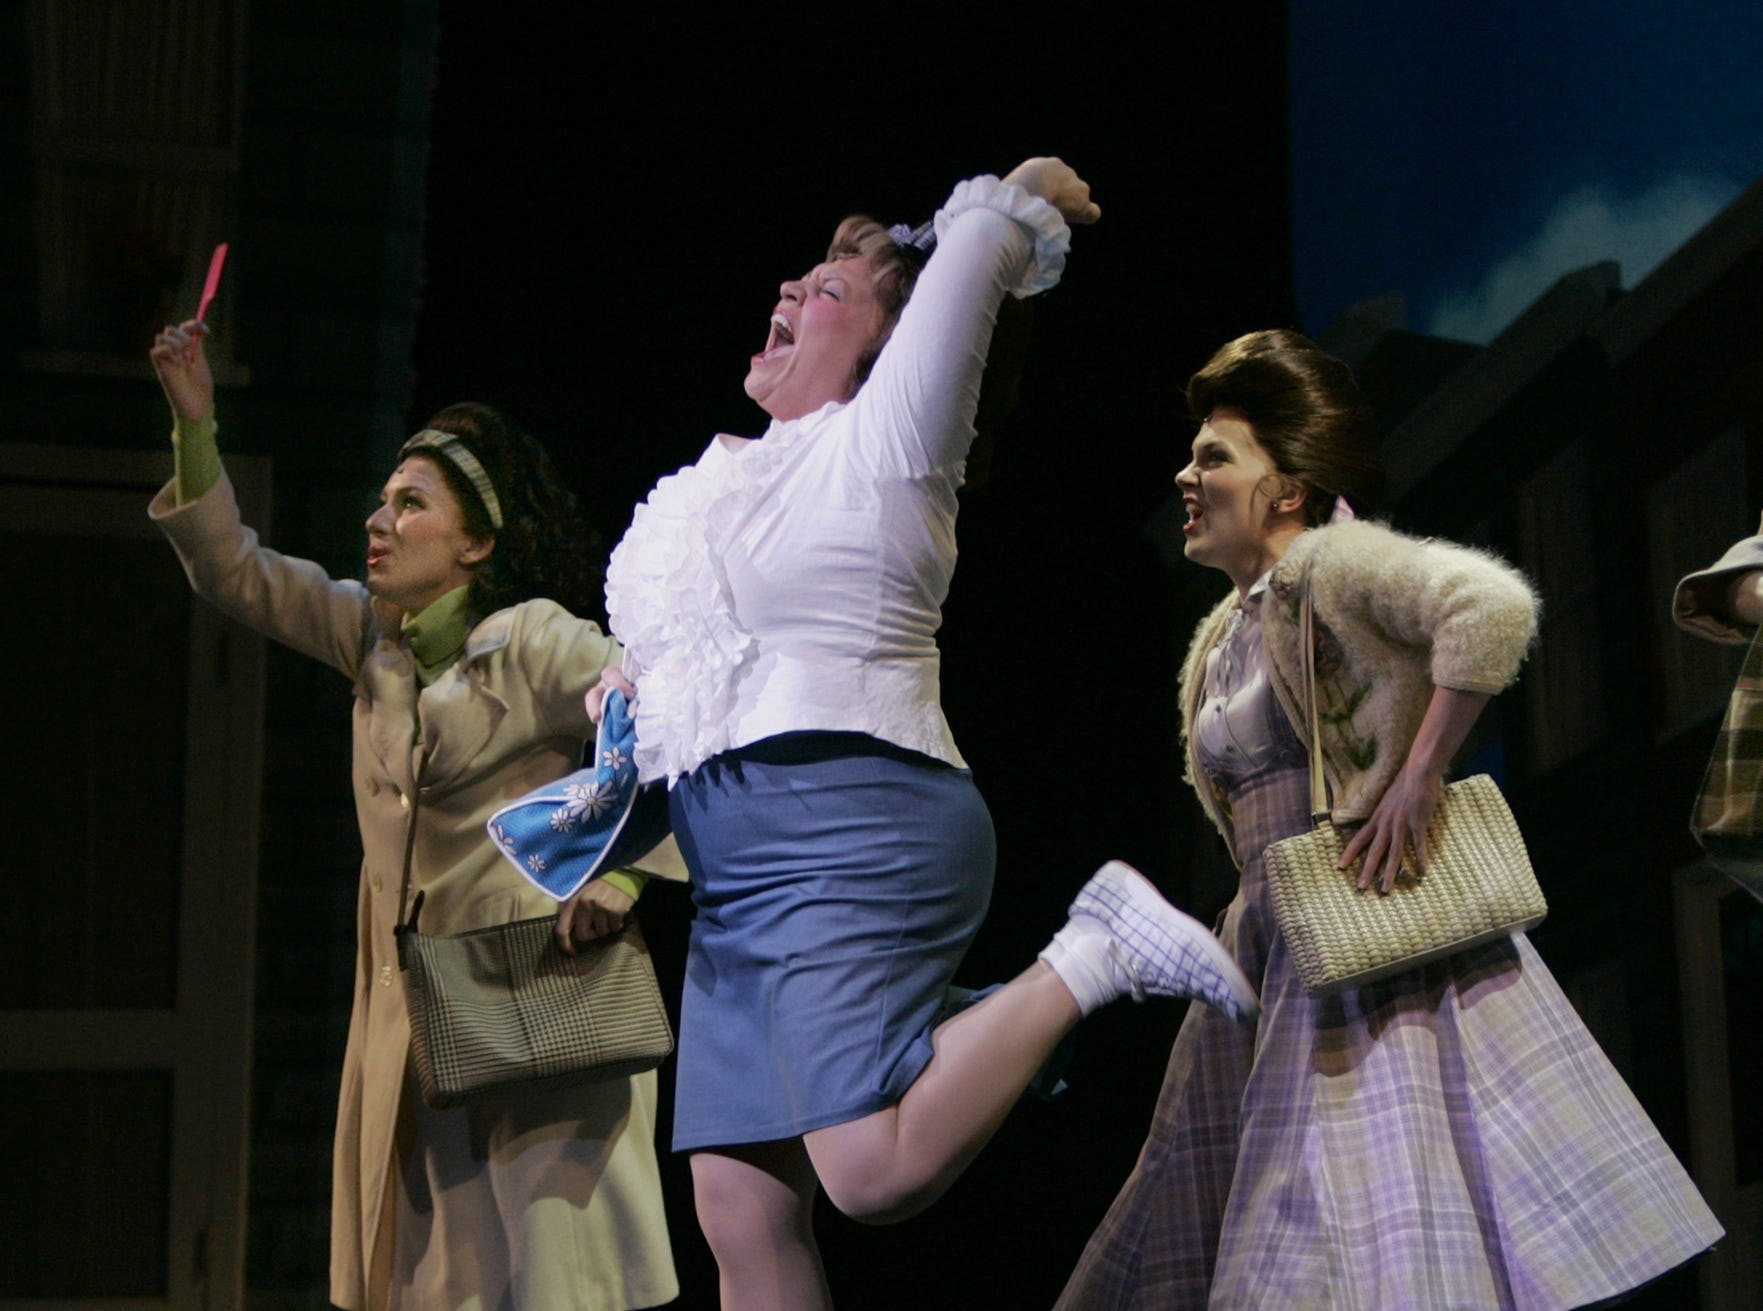 """HAIR19. NEWS, KAS, 2- Keala Settle, (center in white) portrays Tracy Turnblad in """"Hairspray"""" at the Marcus Center for the Performing Arts, 929 N. Water Street, Milwaukee, Tuesday, May 17, 2005.  Photograph by Karen Sherlock"""